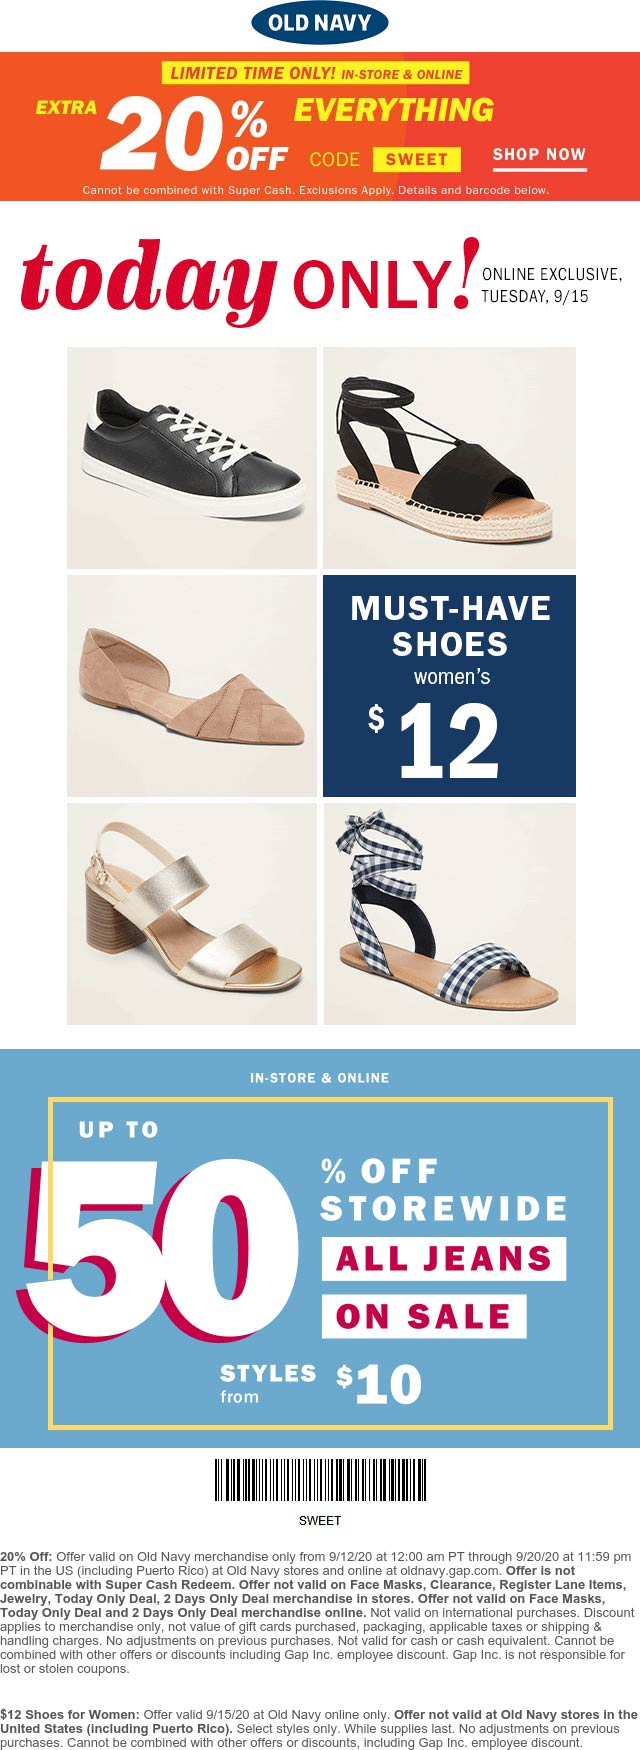 November 2020 Extra 20 Off Everything At Old Navy Or Online Via Promo Code Sweet Oldnavy Coupon Promo Code The Coupons App